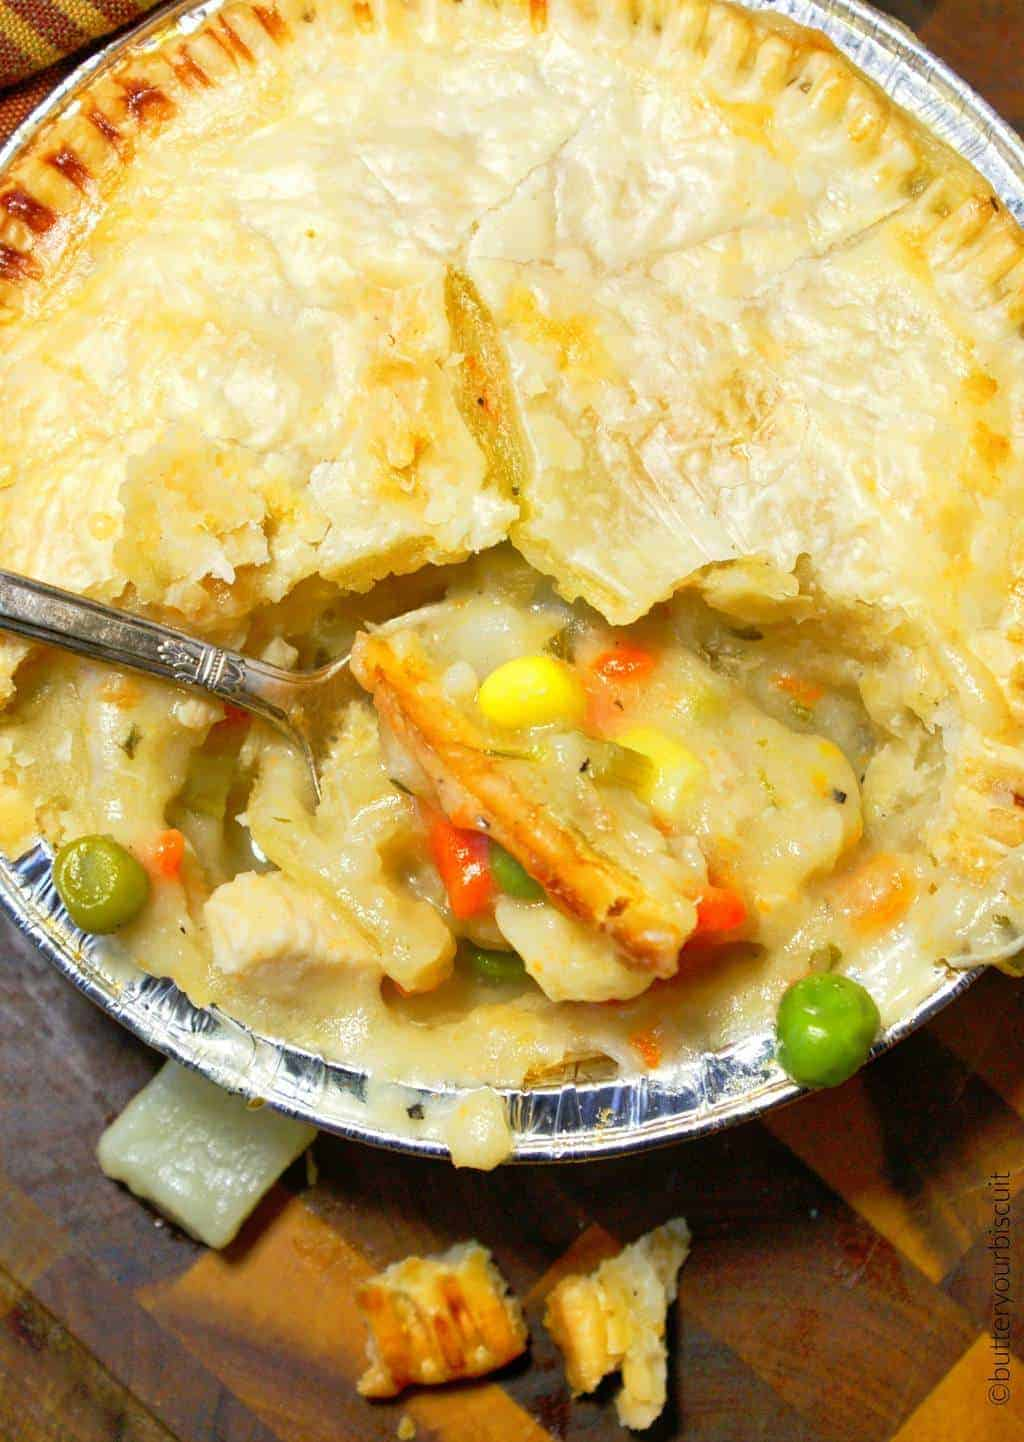 A mini chicken pot pie with a spoon eating a bite out.